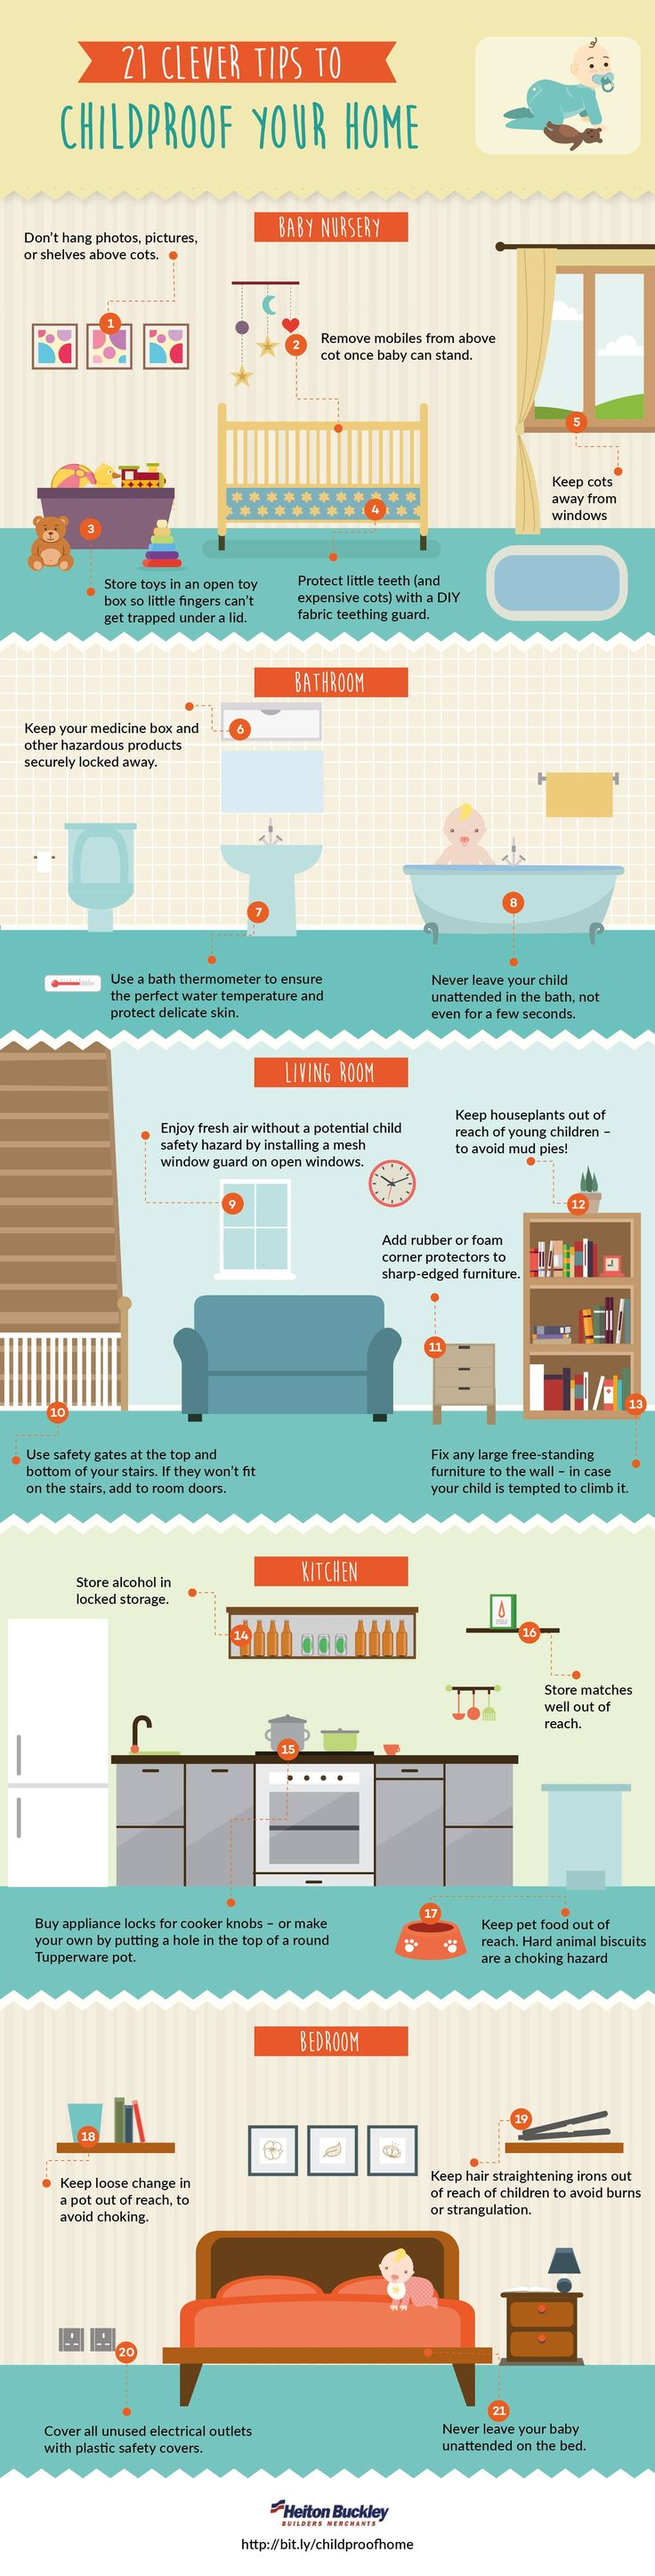 21 Clever Tips To Childproof Your Home #Infographic #Baby #Home